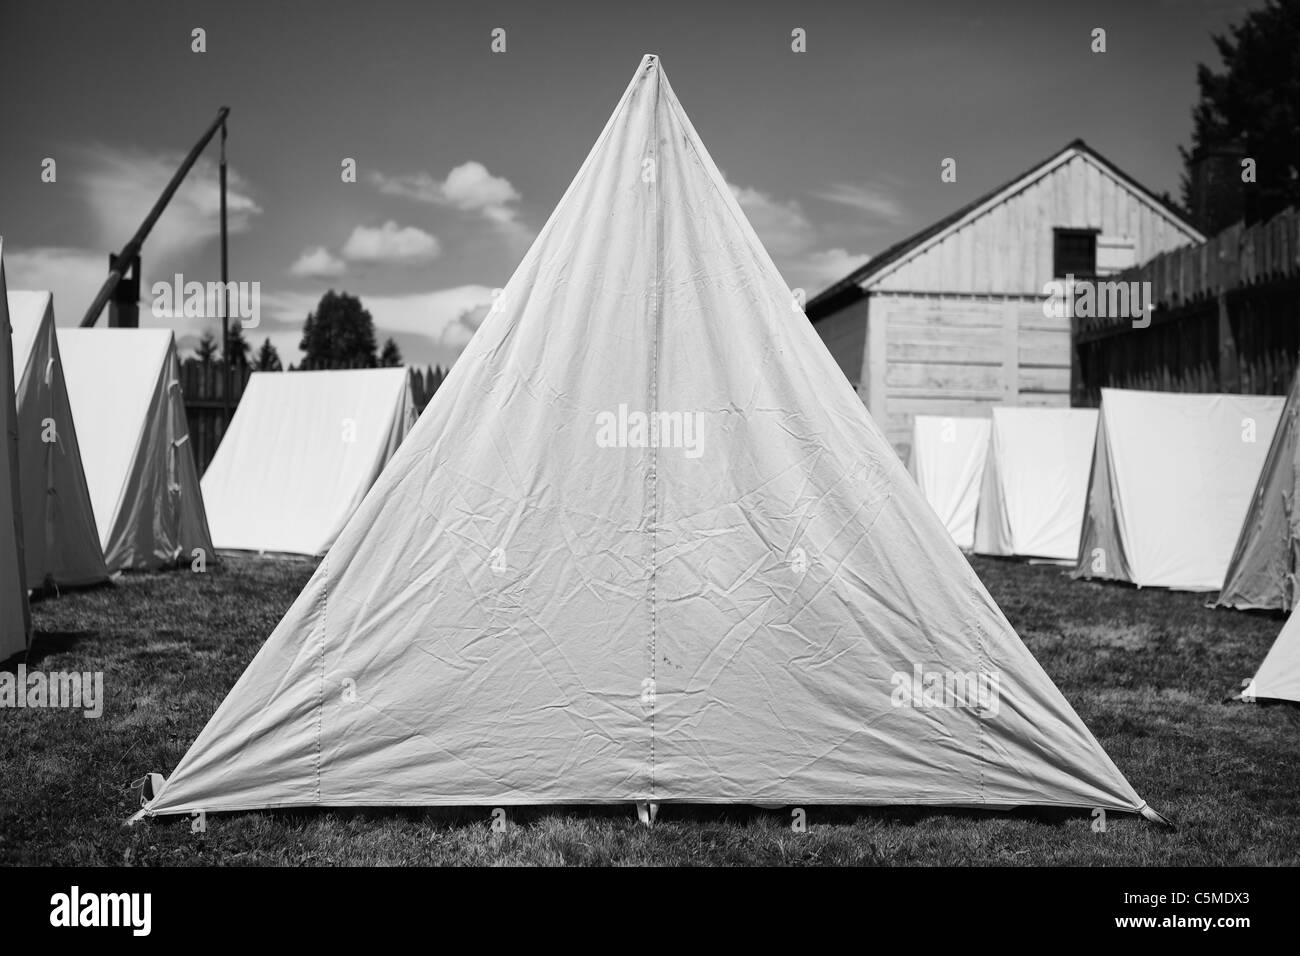 Black And White Image Of 19th Century American Army Tents Stock